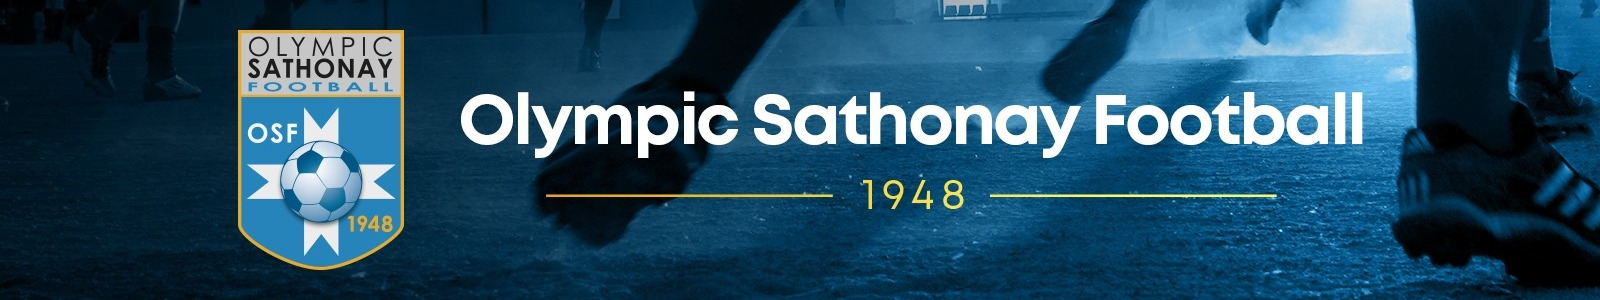 Olympic Sathonay Foot : site officiel du club de foot de SATHONAY CAMP - footeo